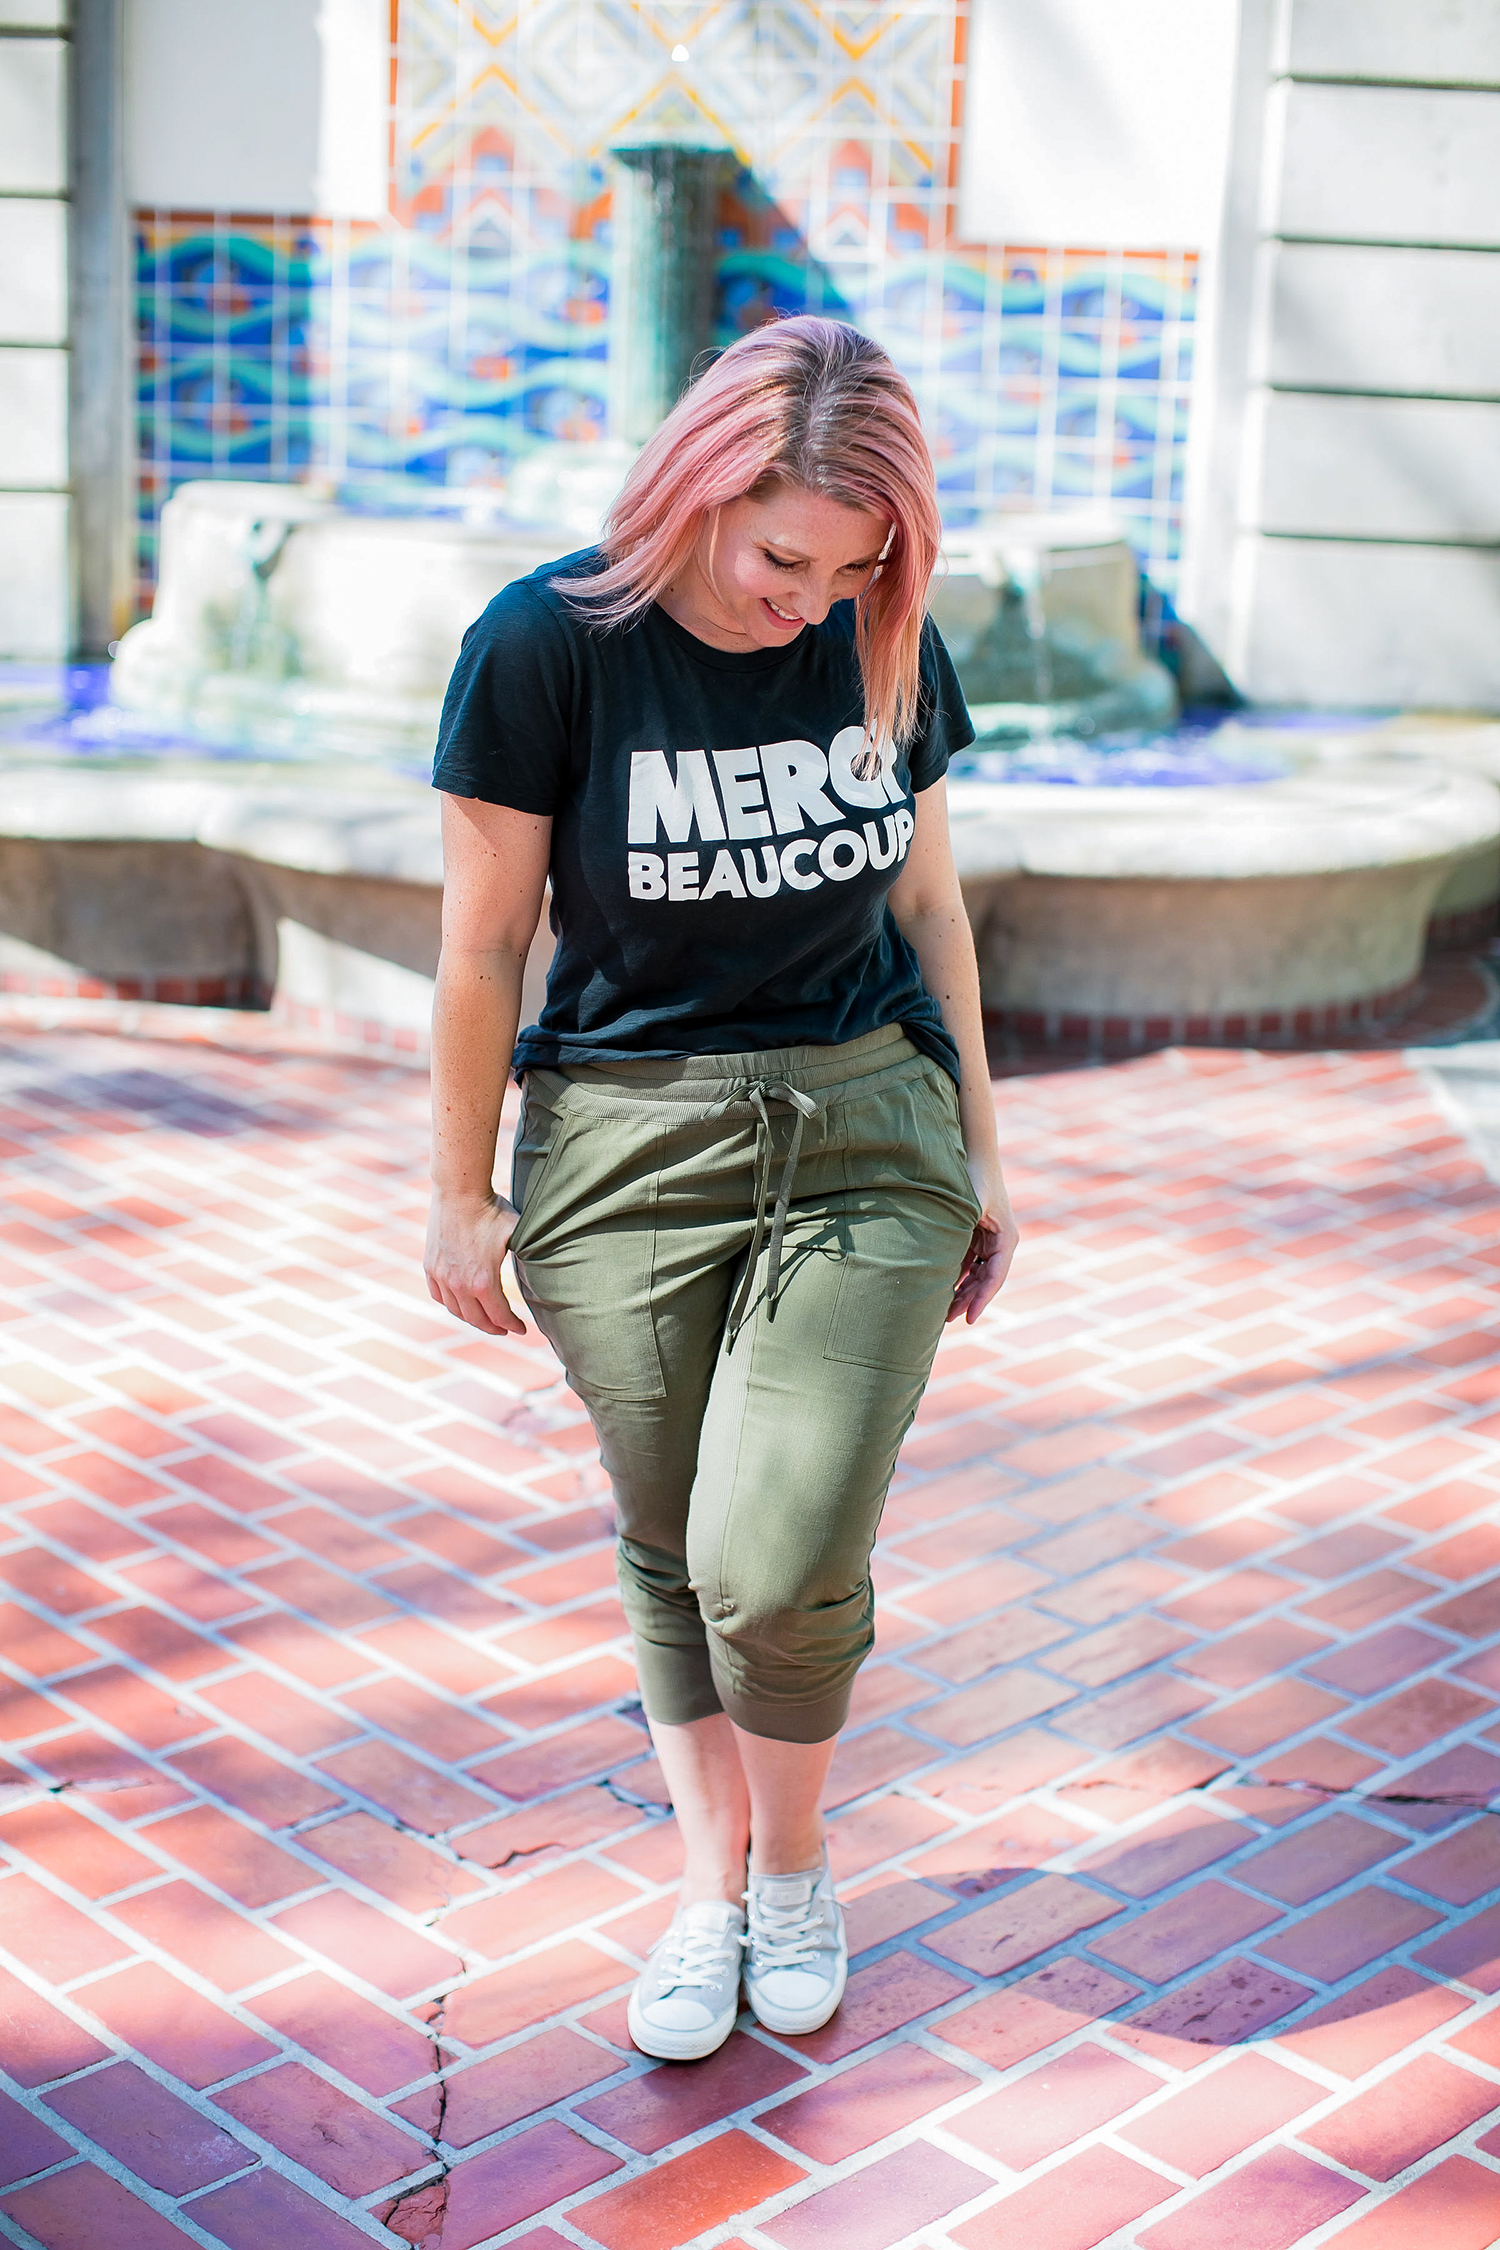 Trying out the athleisure trend? Pair olive joggers with a graphic tee for the perfect mom outfit!